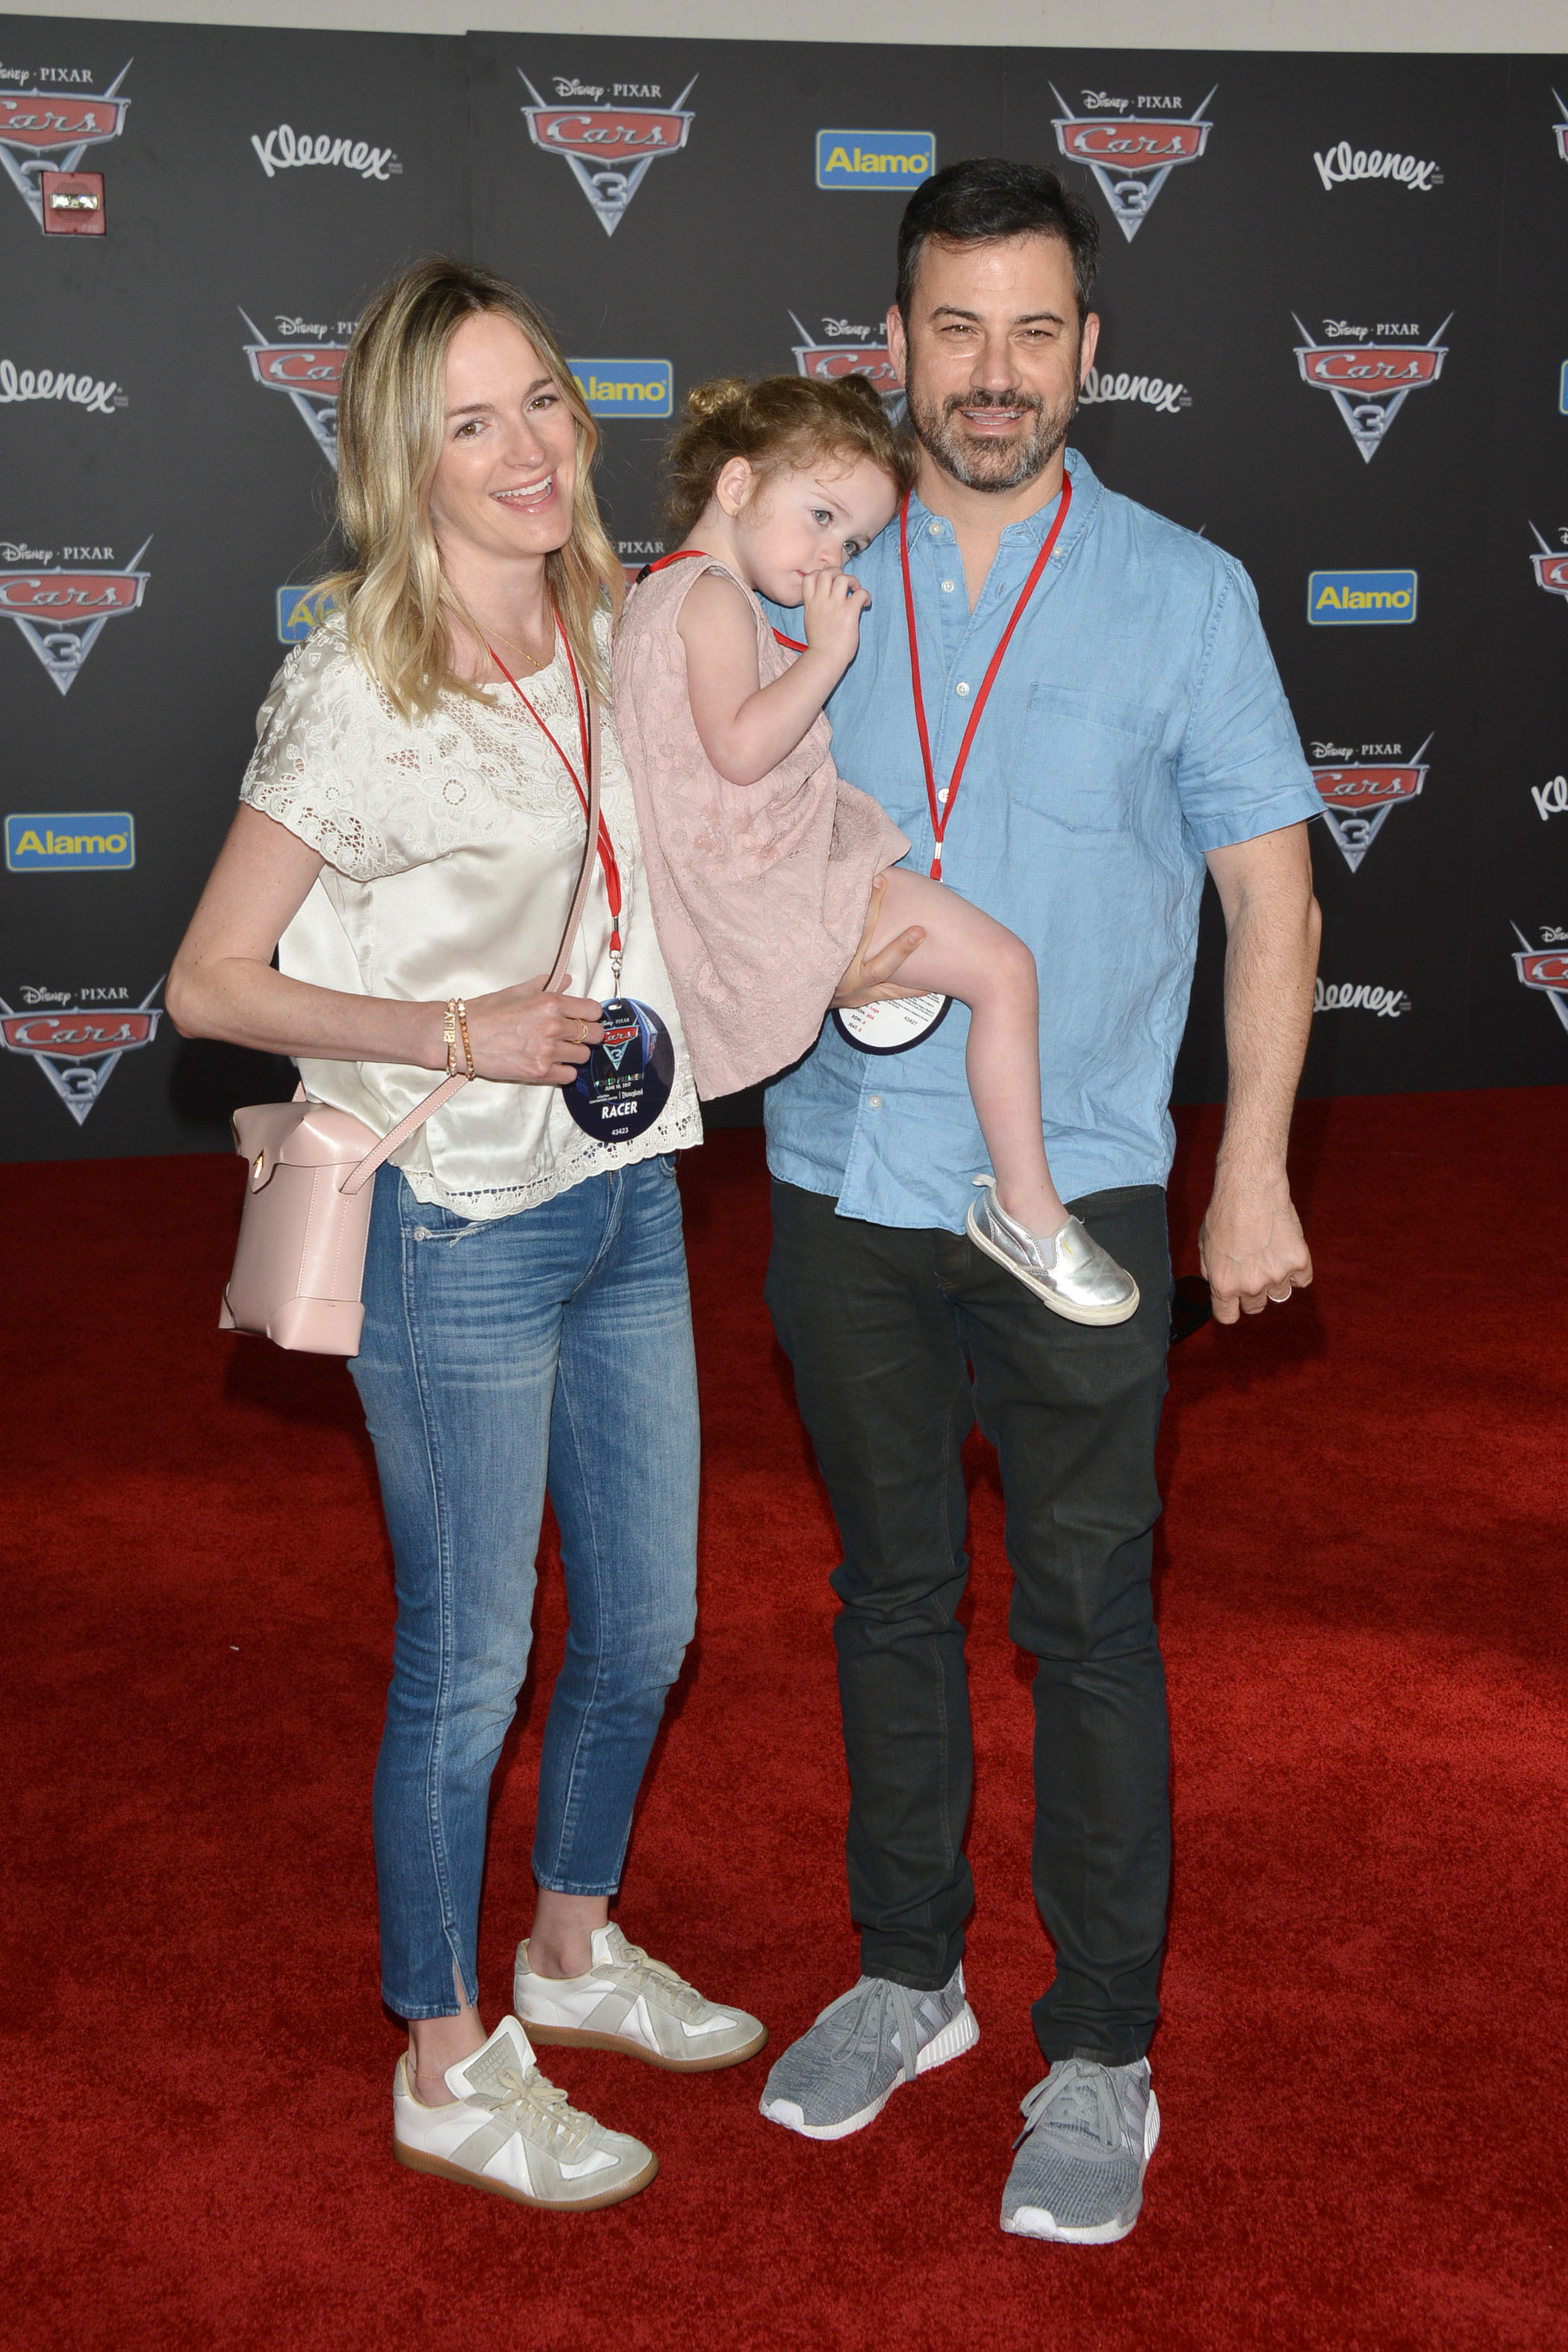 """Jimmy Kimmel, wife Molly McNearney and their daughter, Jane, attend the world premiere of Disney and Pixar's """"Cars 3"""" at the Anaheim Convention Center in Anaheim, California, on June 10, 2017."""